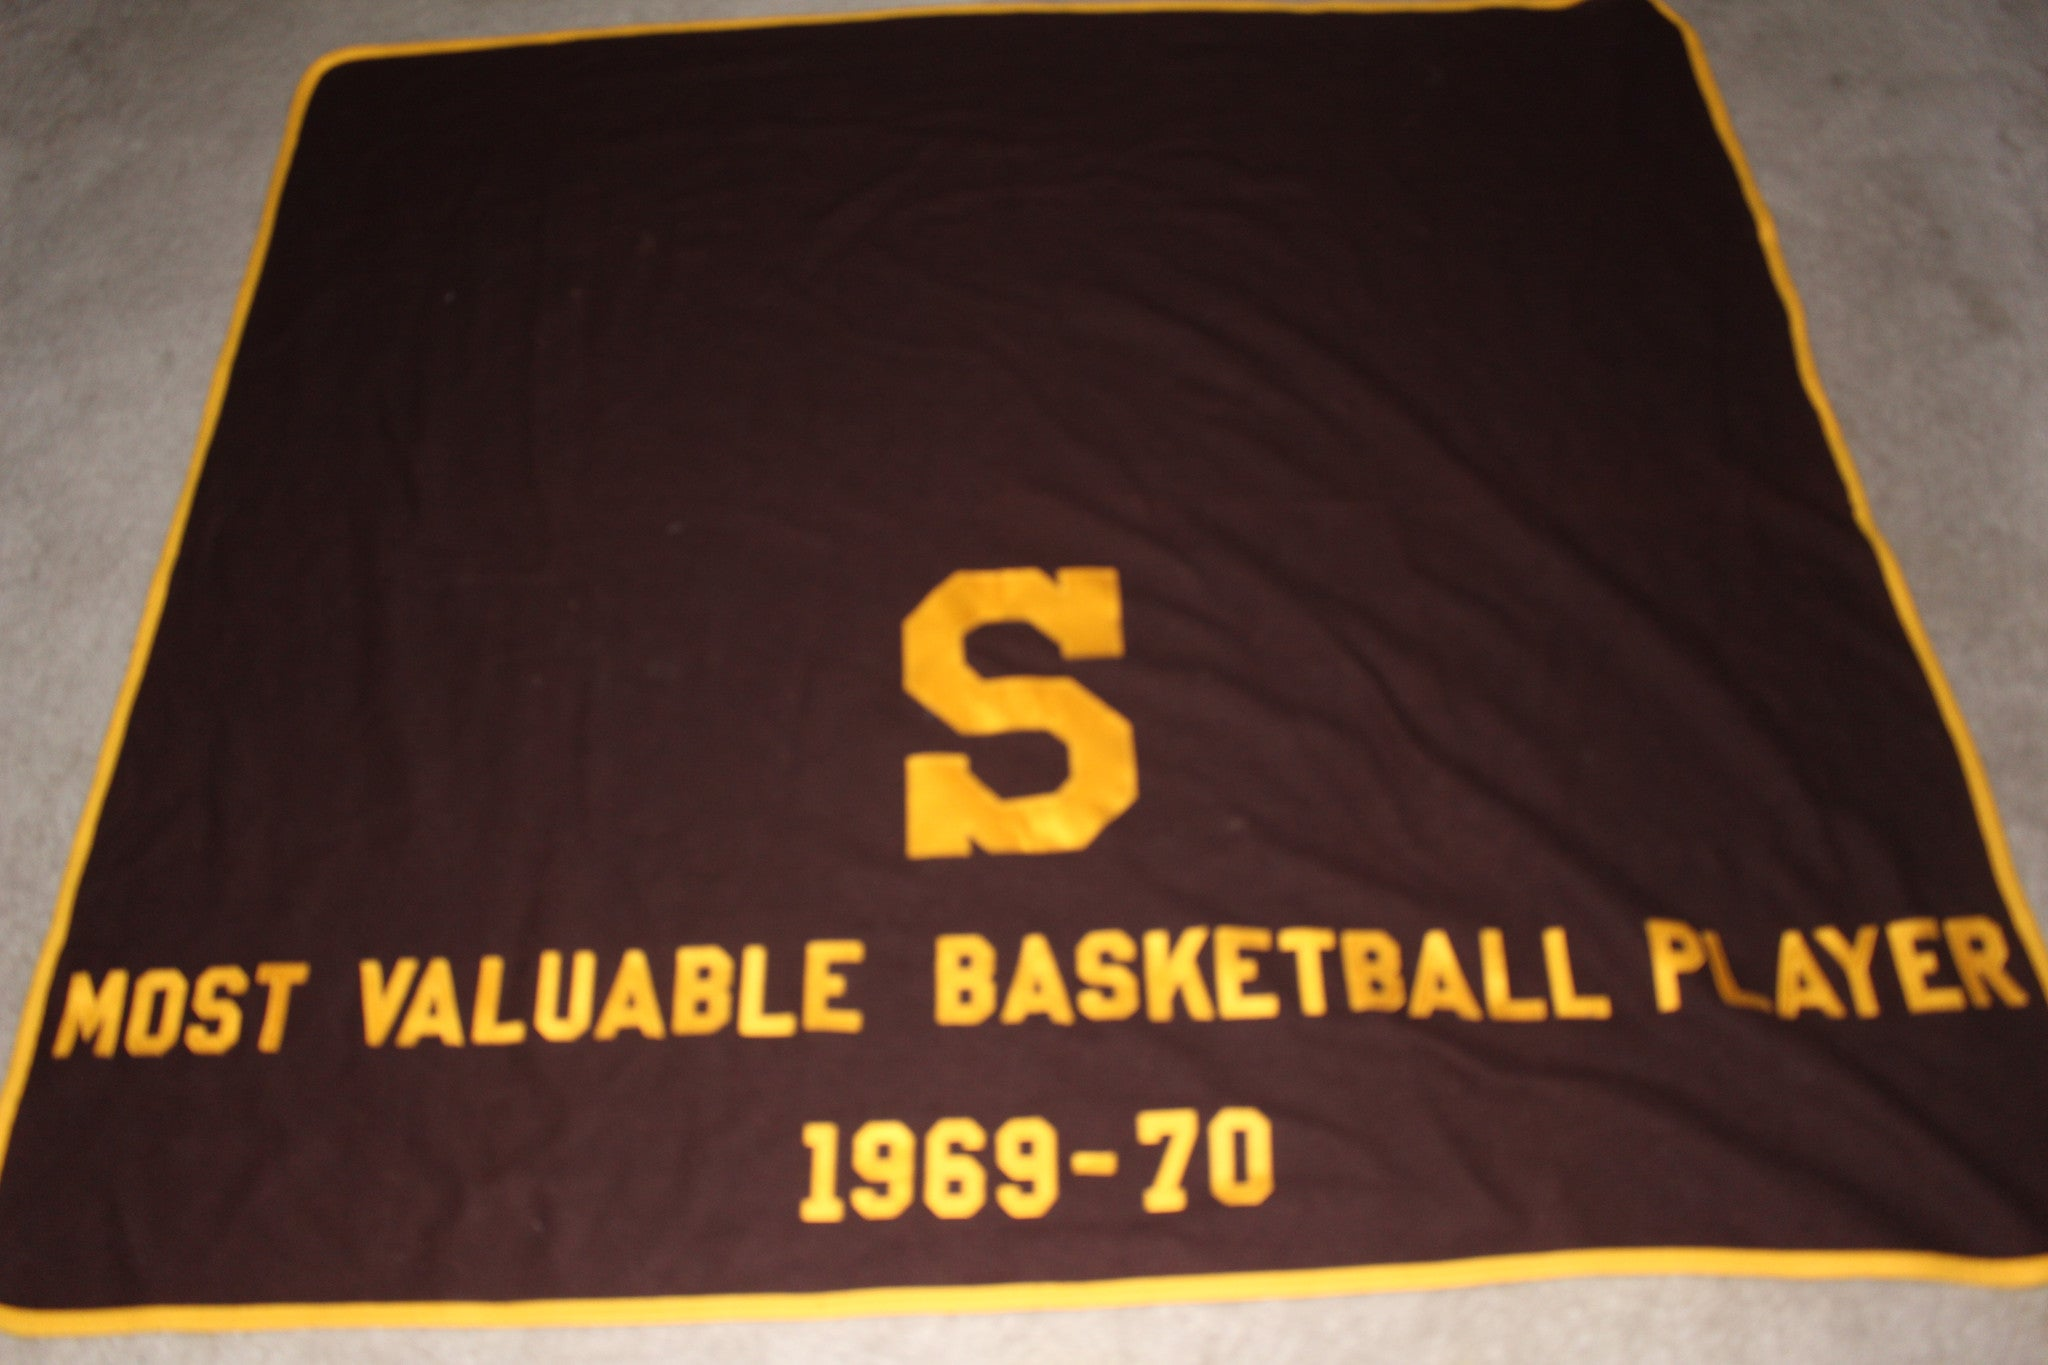 1969-70 Speedway, Indiana High School Basketball Most Valuable Player Blanket - Vintage Indy Sports